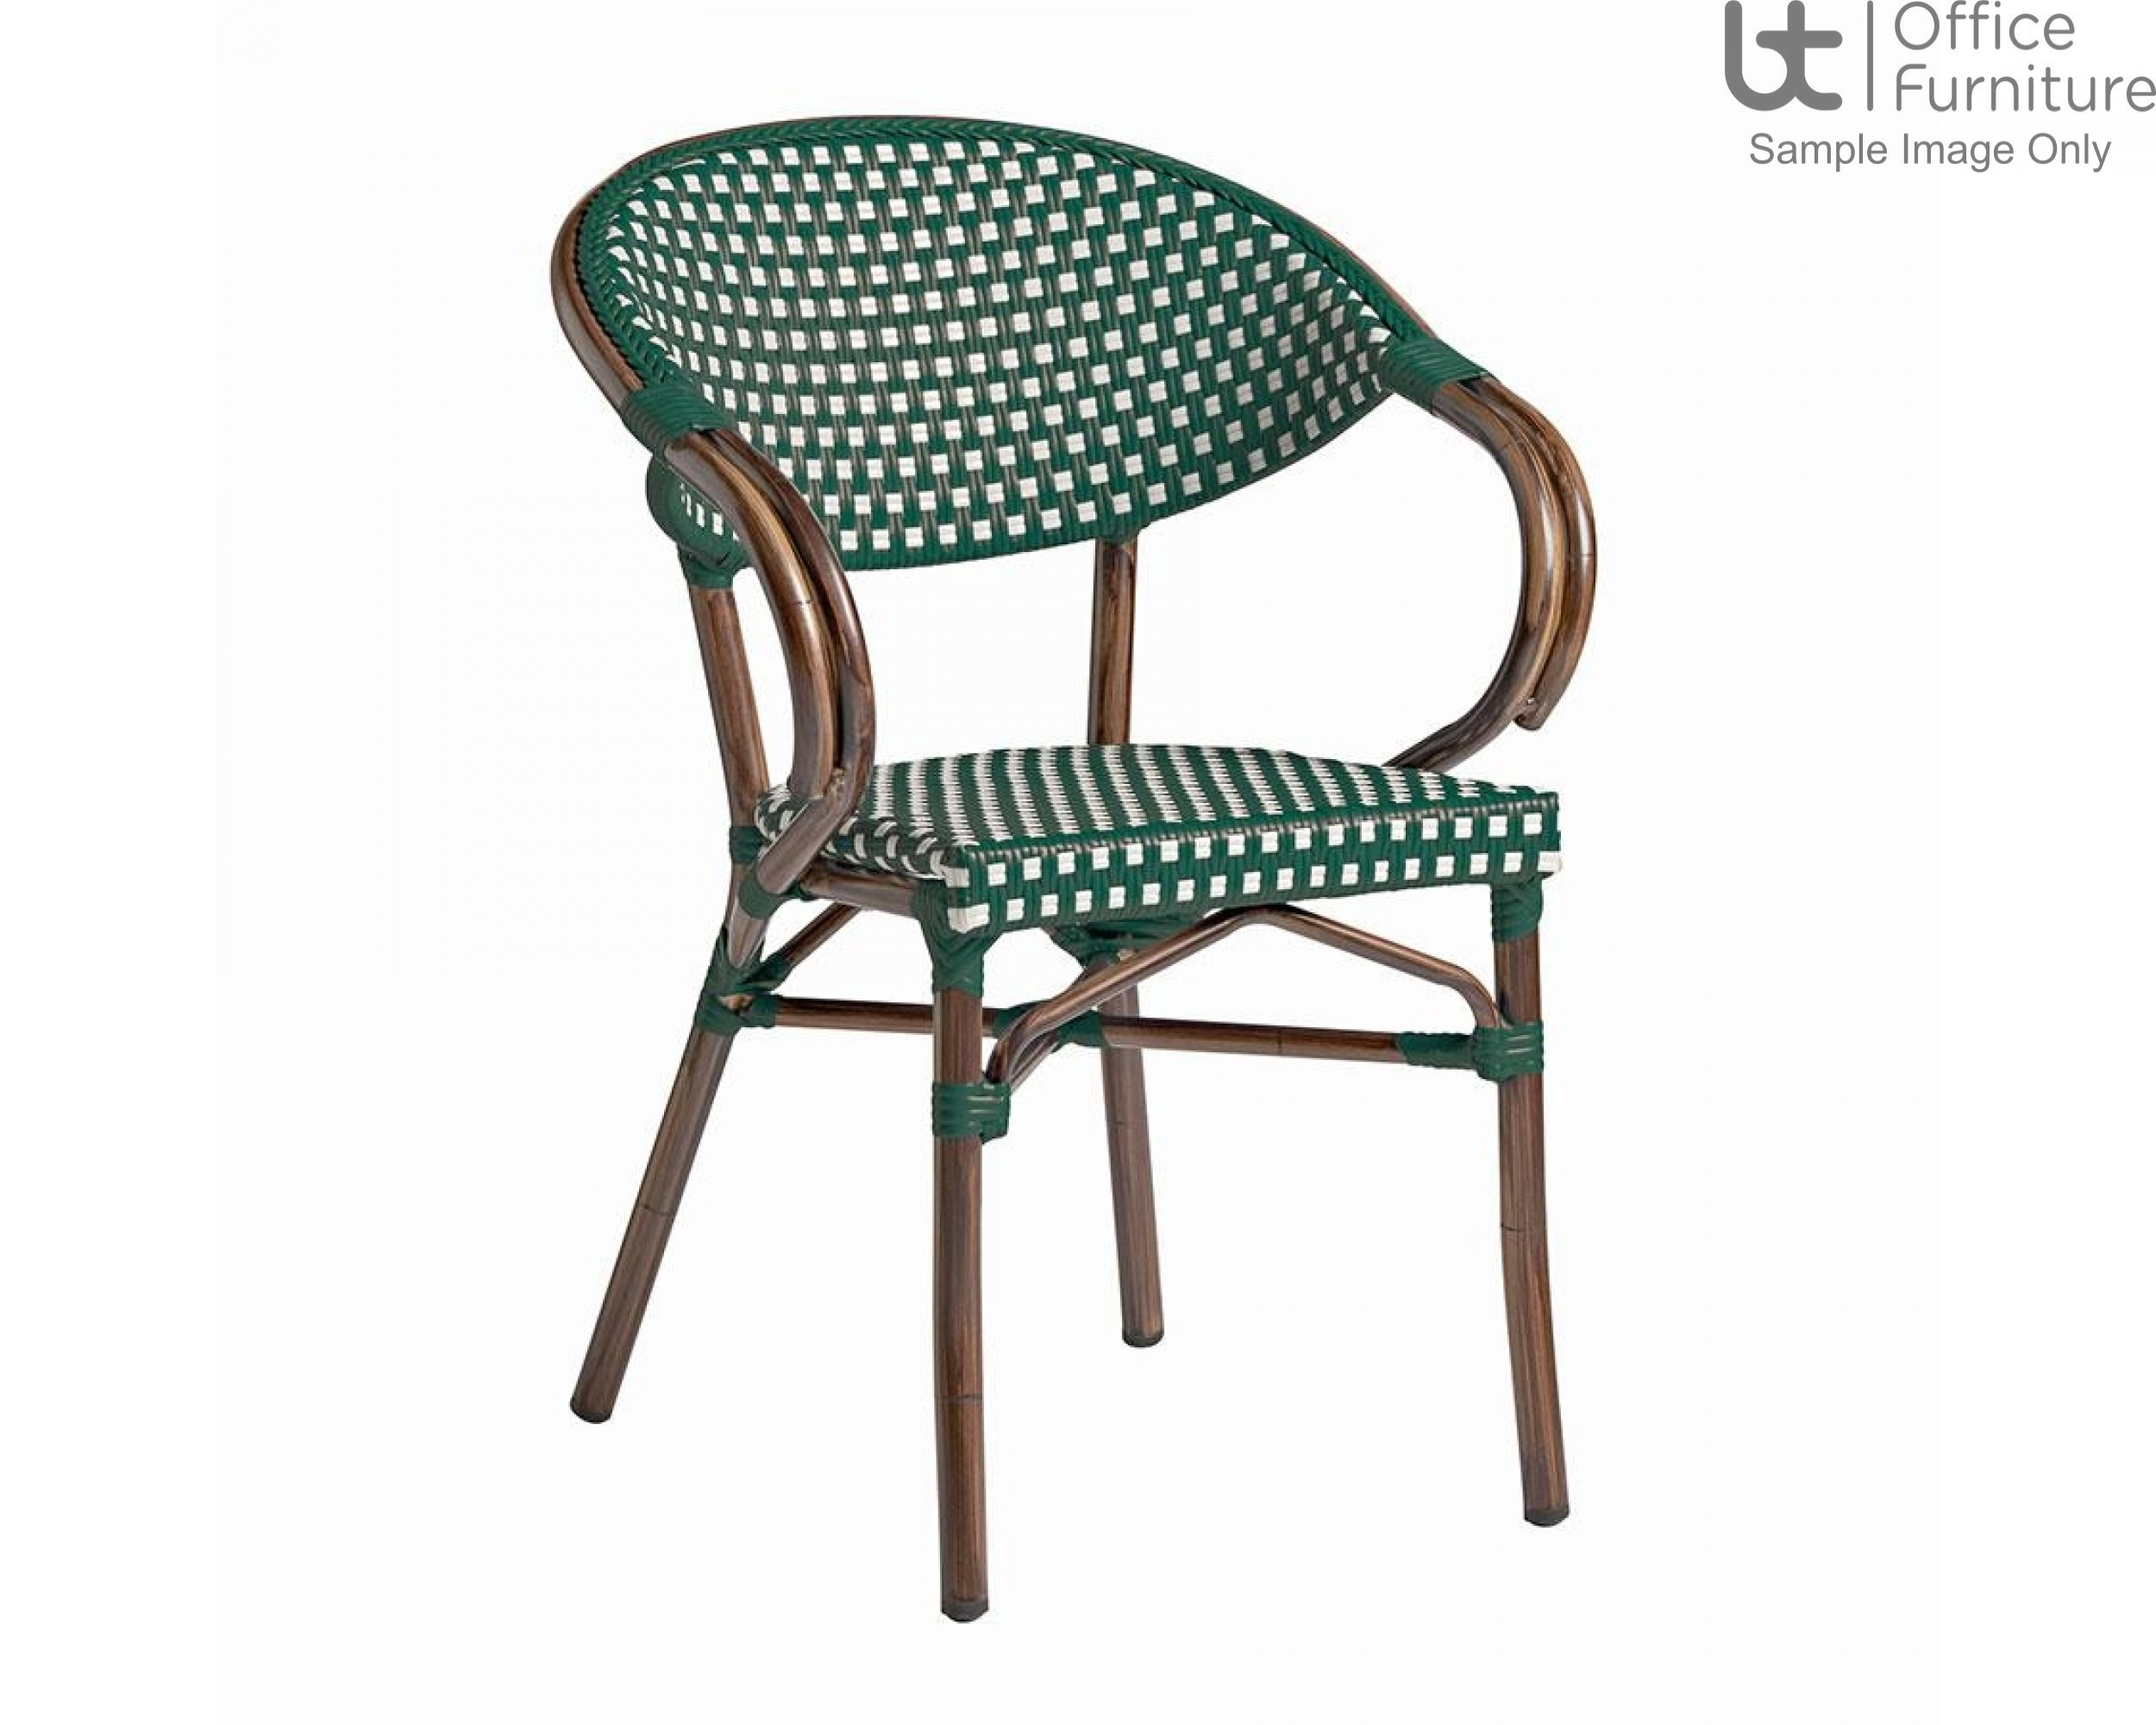 ZP PANDA Arm Chair – Green and White Weave